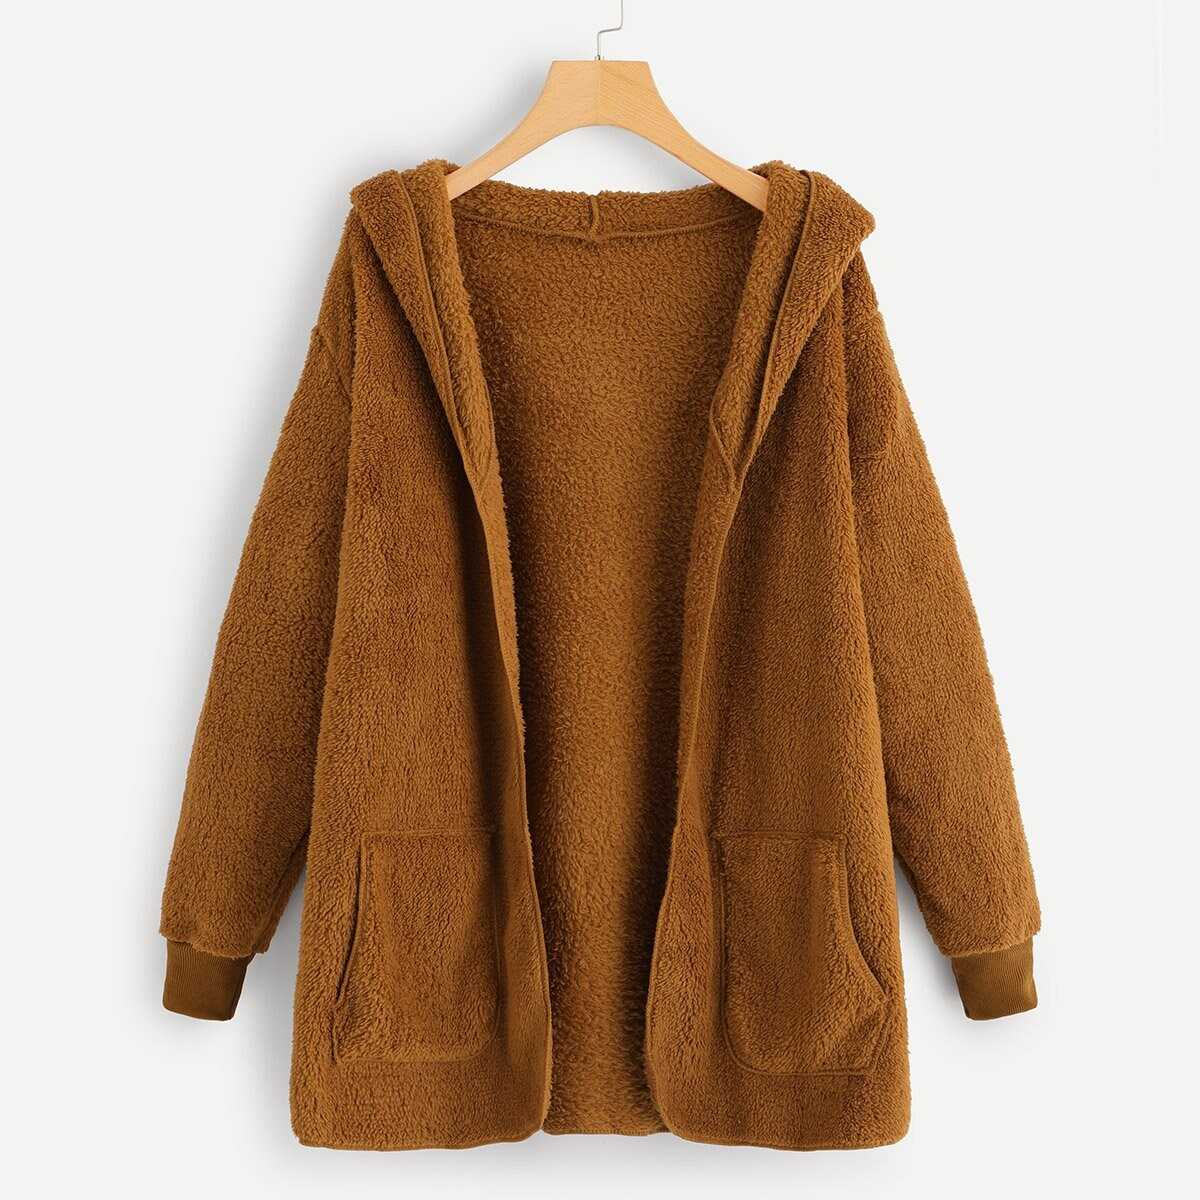 Solid Hooded Teddy Coat in Brown by ROMWE on GOOFASH